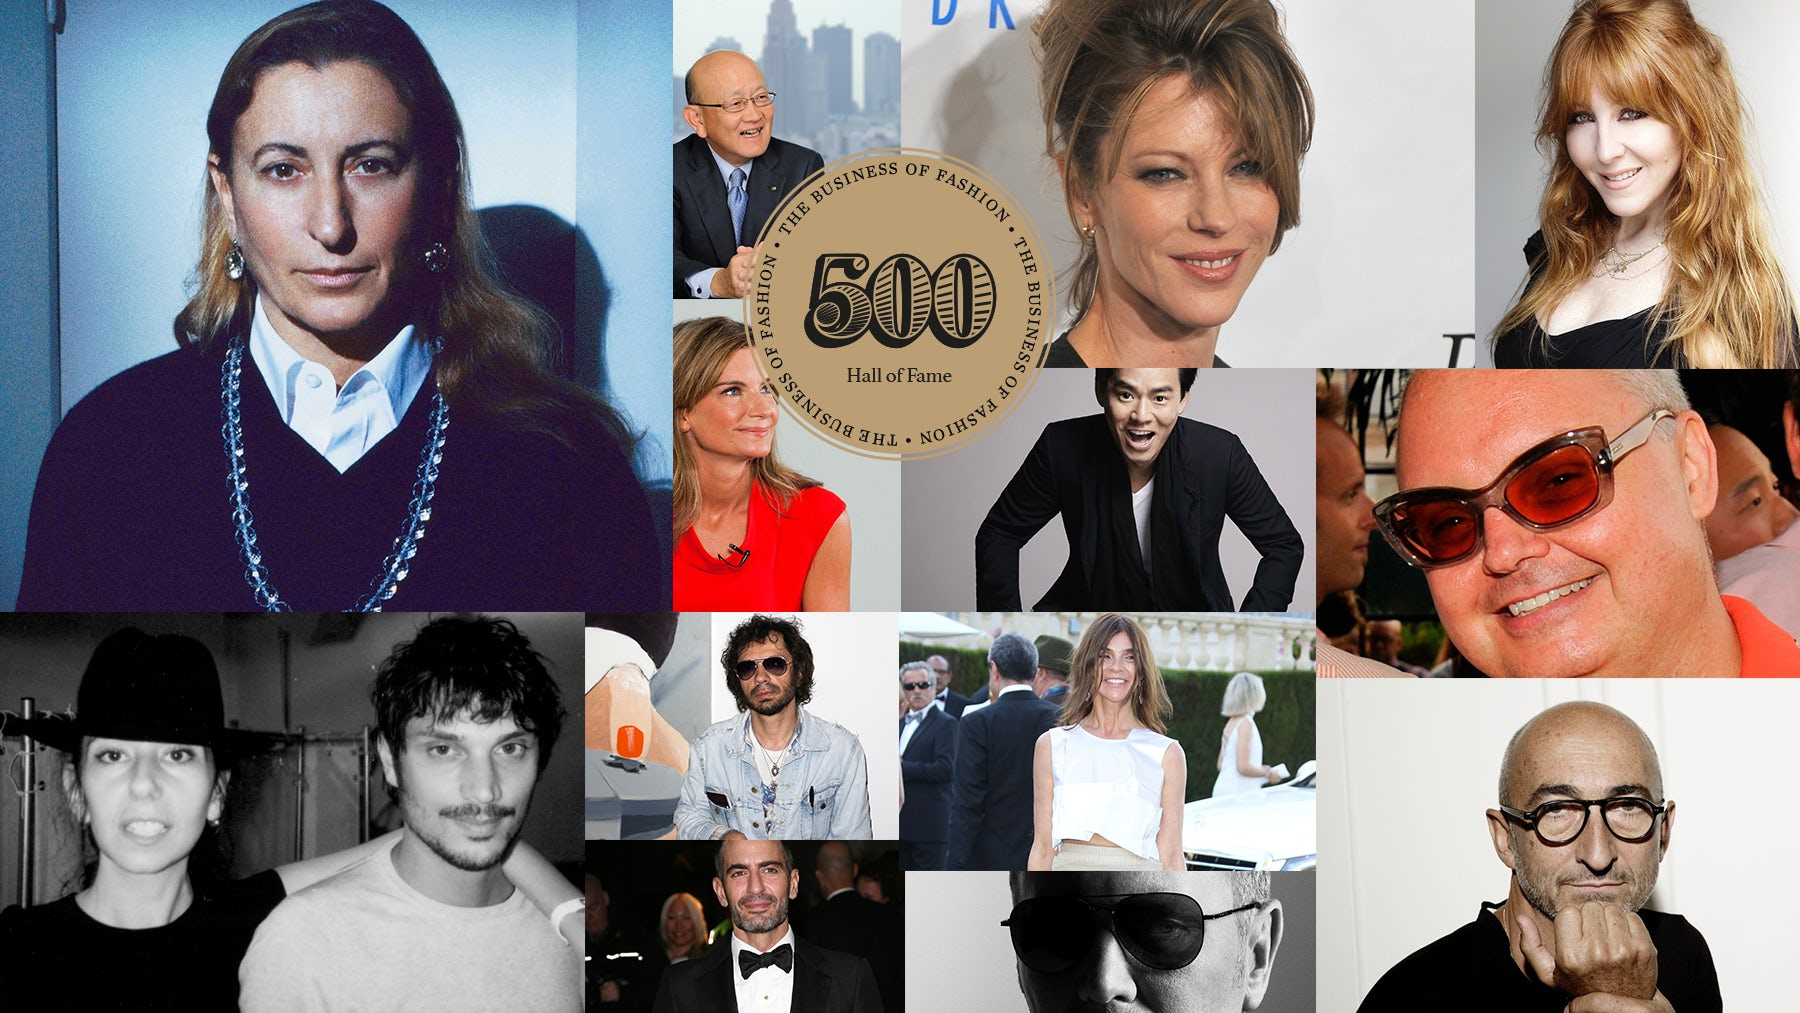 Introducing the 2018 BoF 500 Hall of Fame | Sources: Courtesy